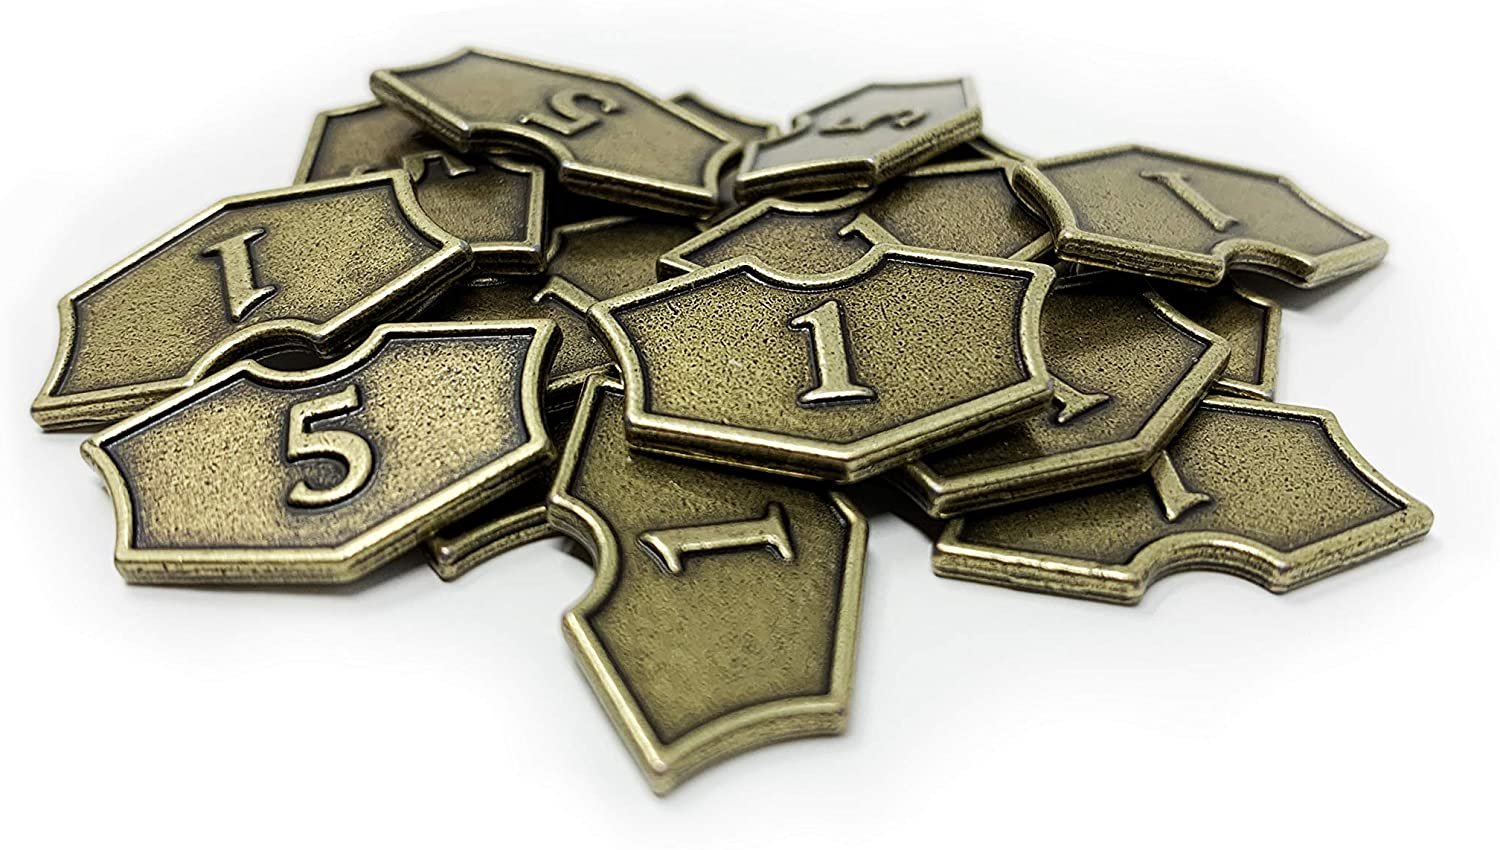 Citadel Black MTG Loyalty Counters Set of 20 Metal Tokens - with Velvet Drawstring Pouch, Antique Gold Finish Metal Tokens, Magic: The Gathering